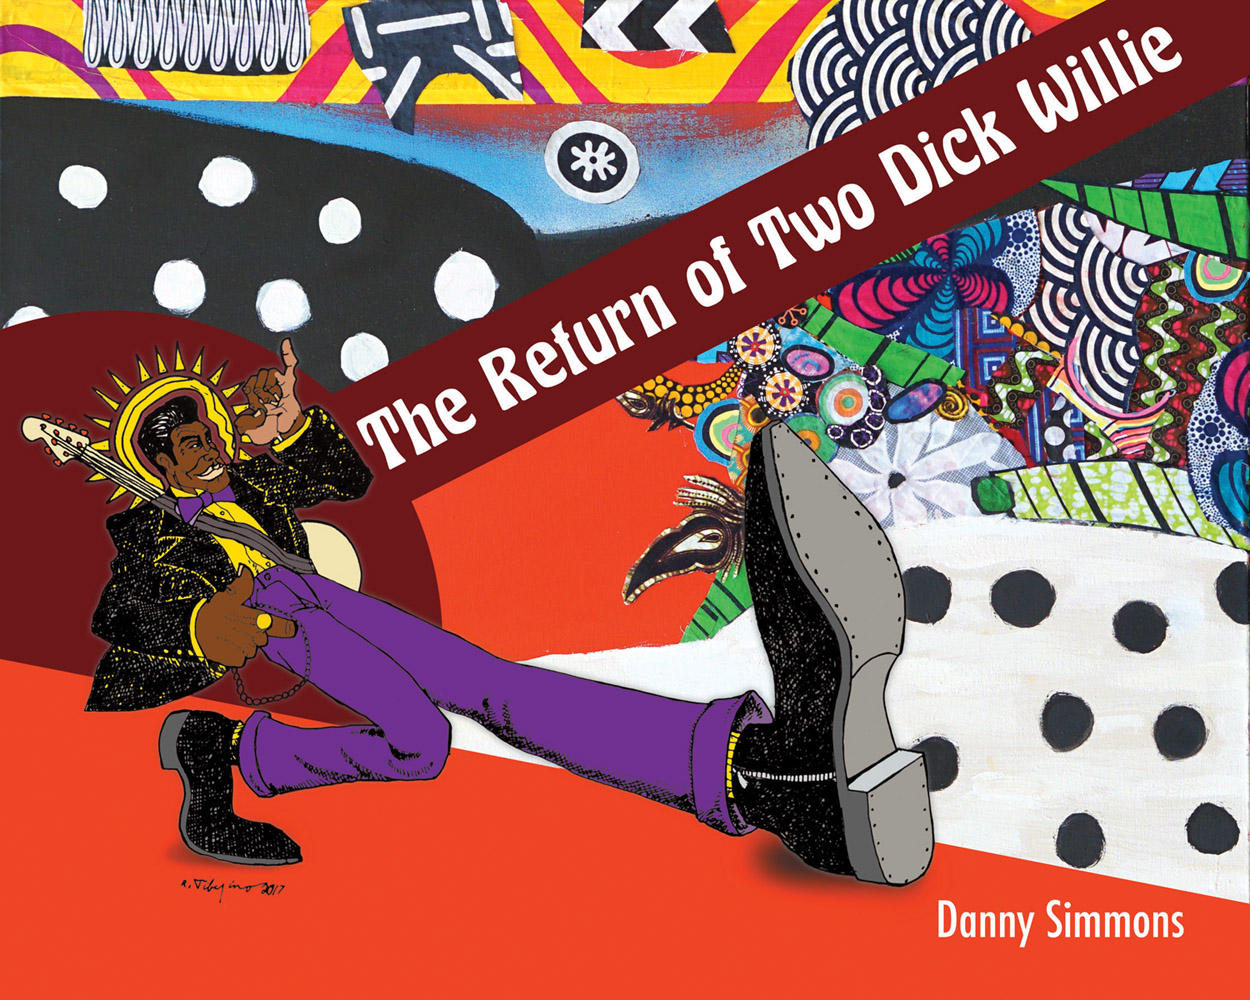 The Return of Two Dick Willie